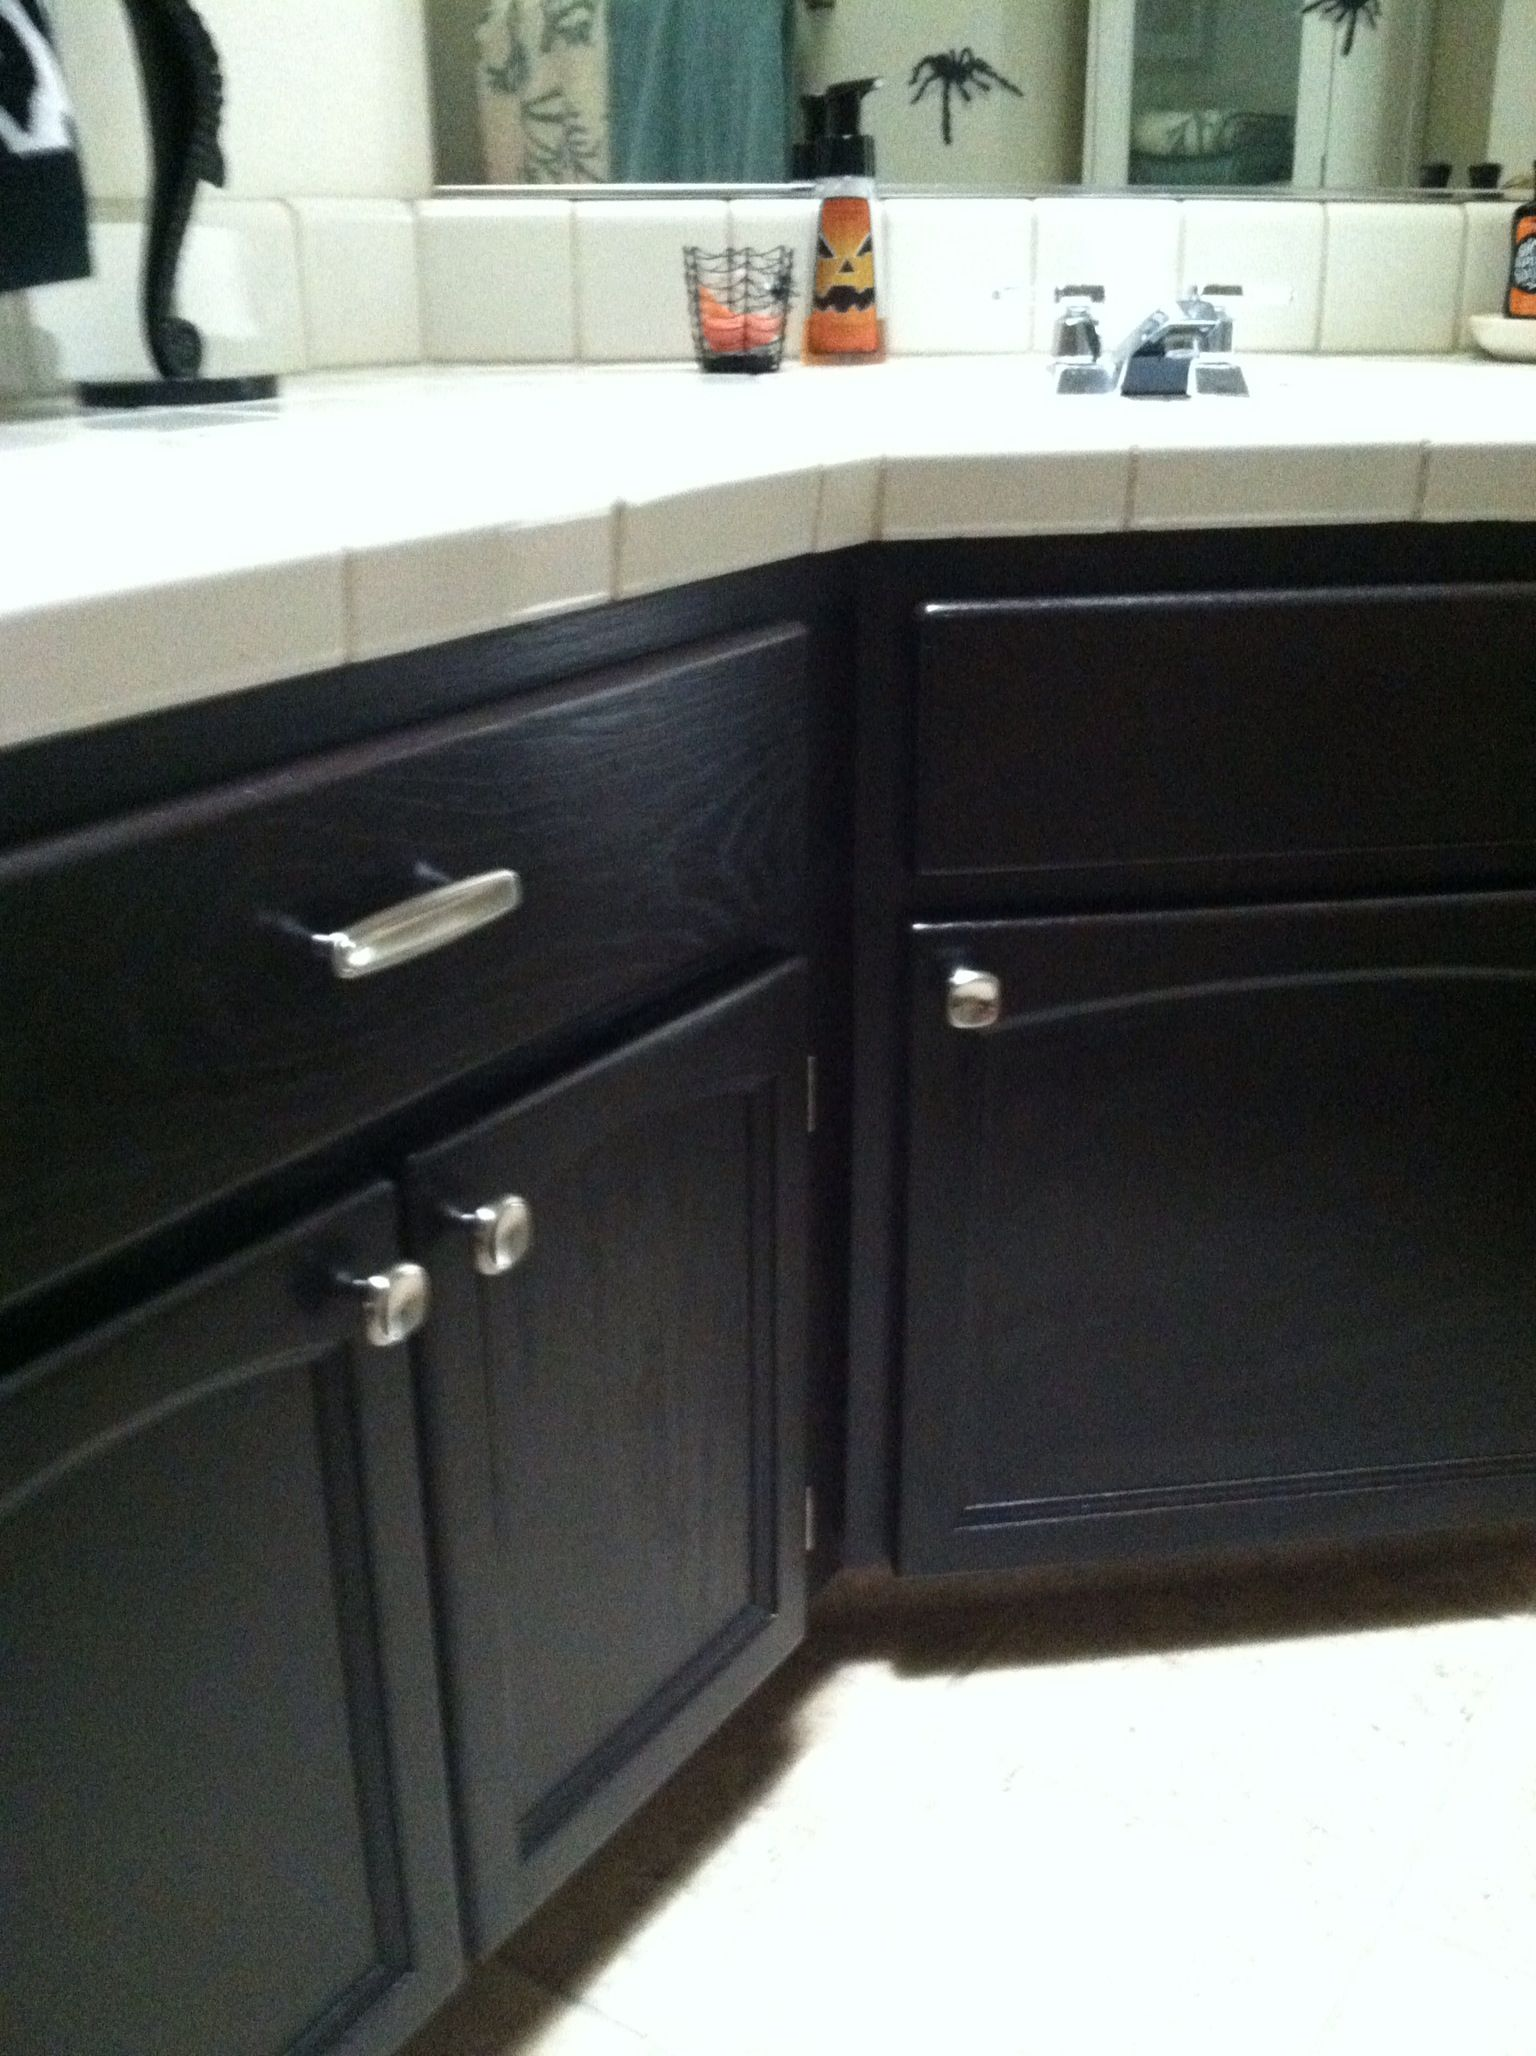 How To Stain Kitchen Cabinets Espresso Stain Oak Cabinets Espresso With Java Gel Stain! General